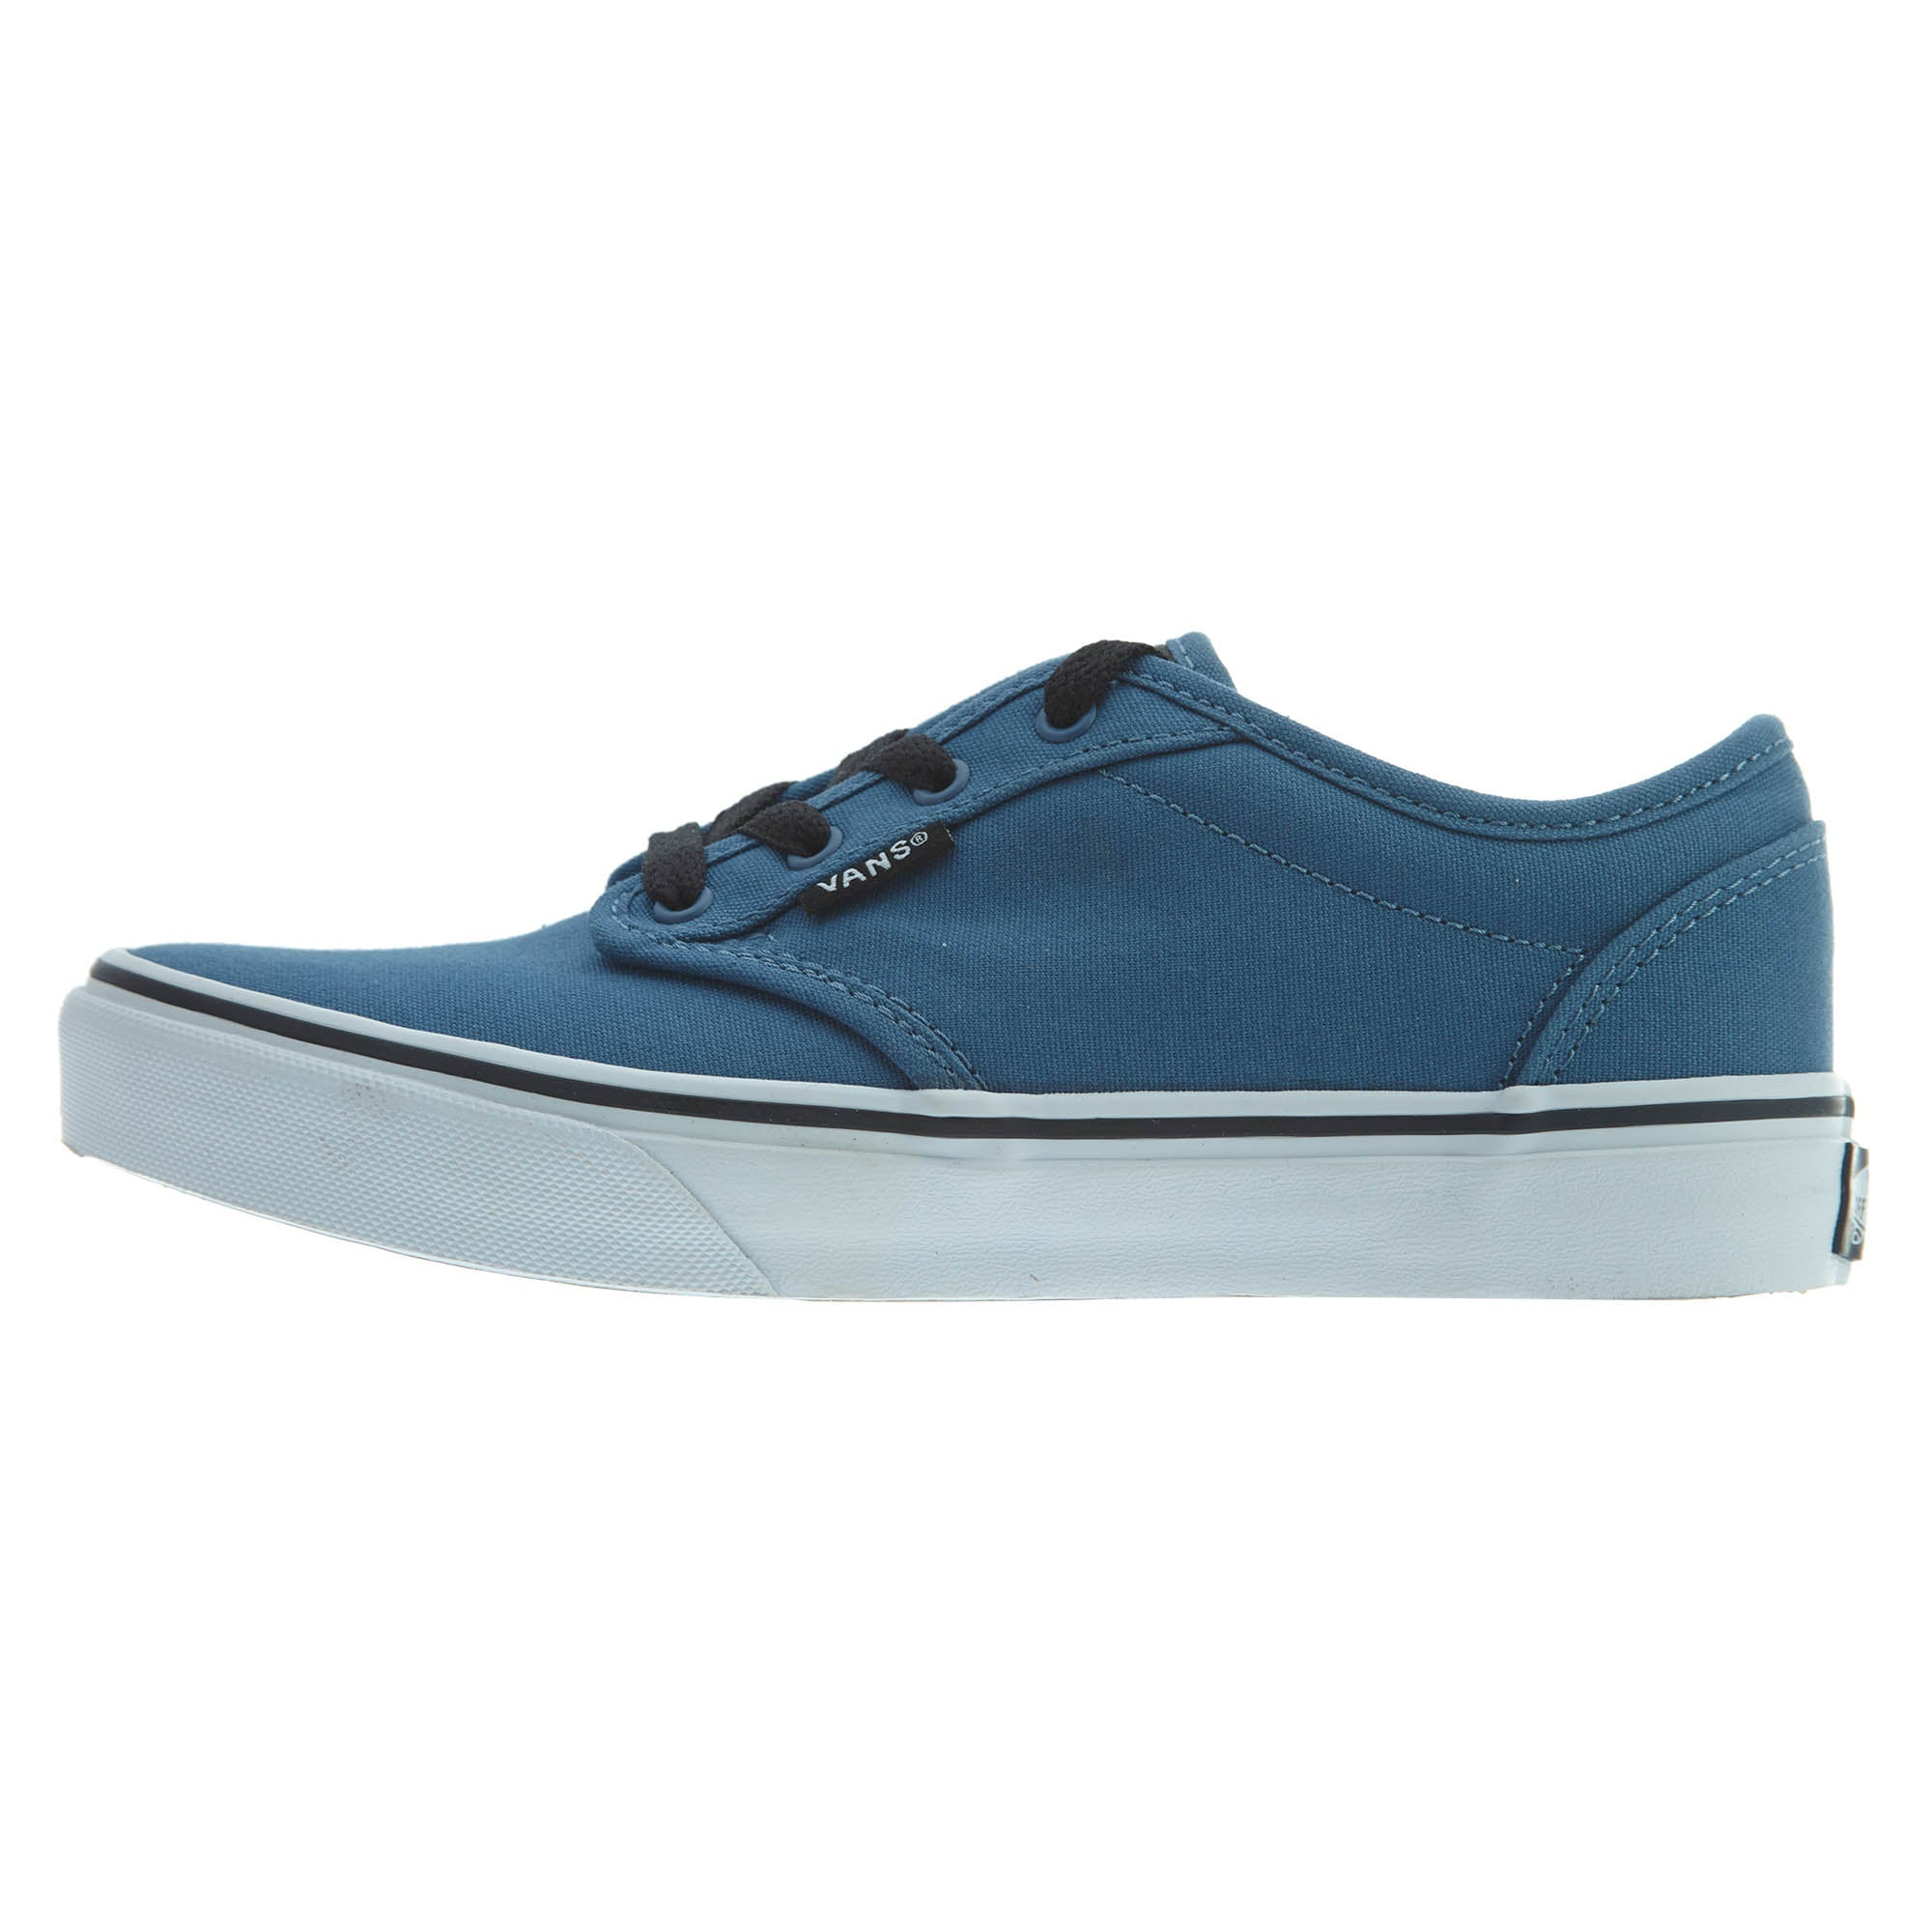 222602b73b6c80 Vans Atwood (Canvas) Big Kids Style   Vn0a349p-MI8 – Sneaker Experts